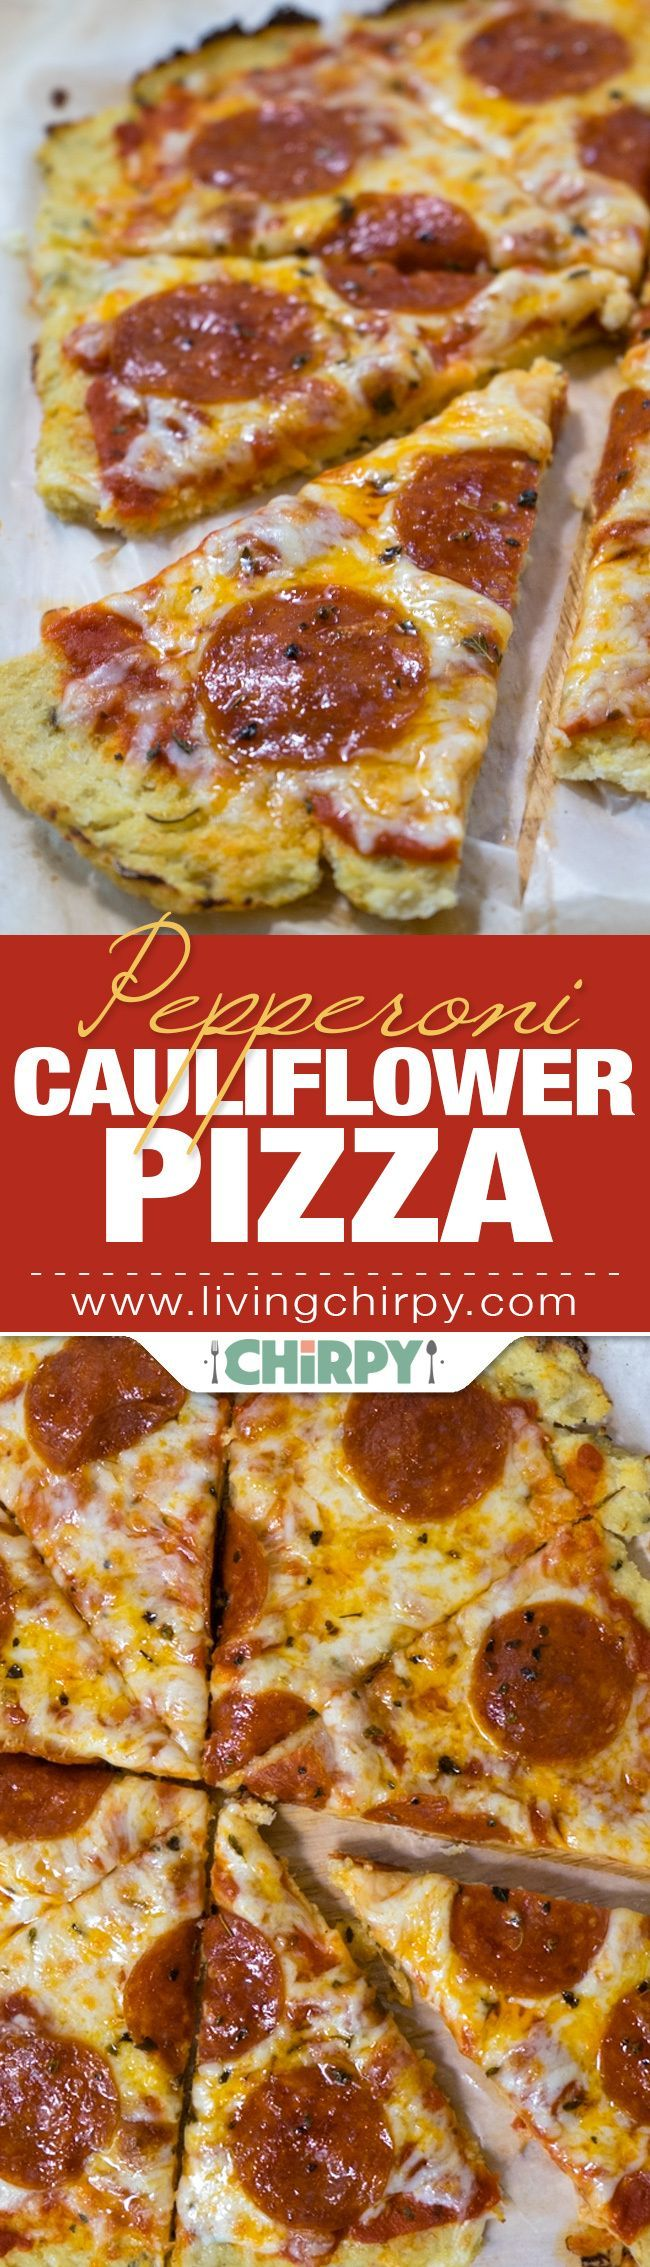 Pepperoni Cauliflower Pizza Pin